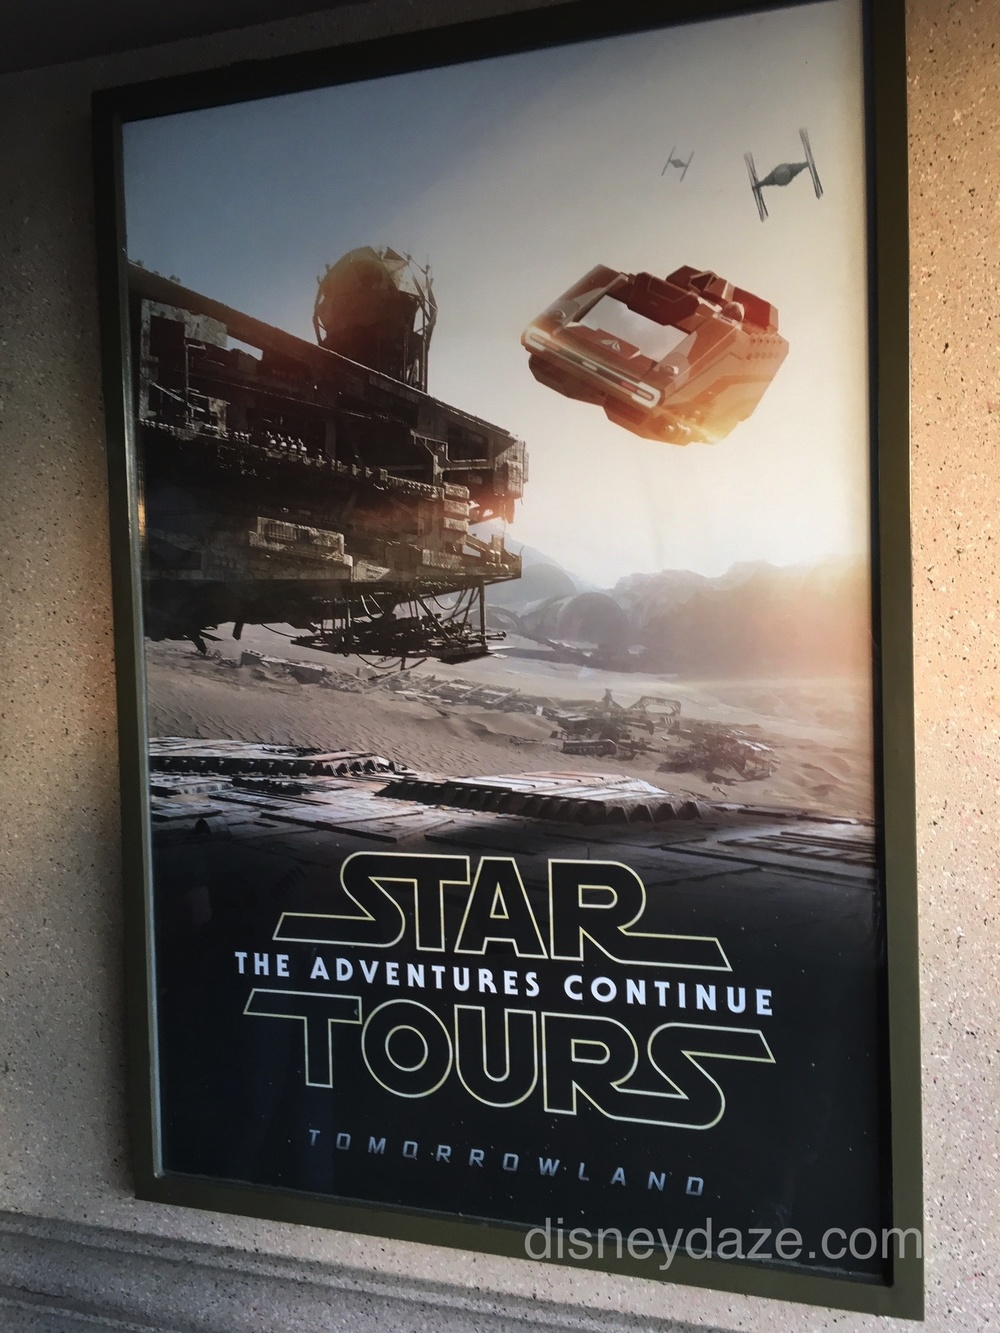 New Star Tours poster that you can view upon entering through the Main Street tunnels.